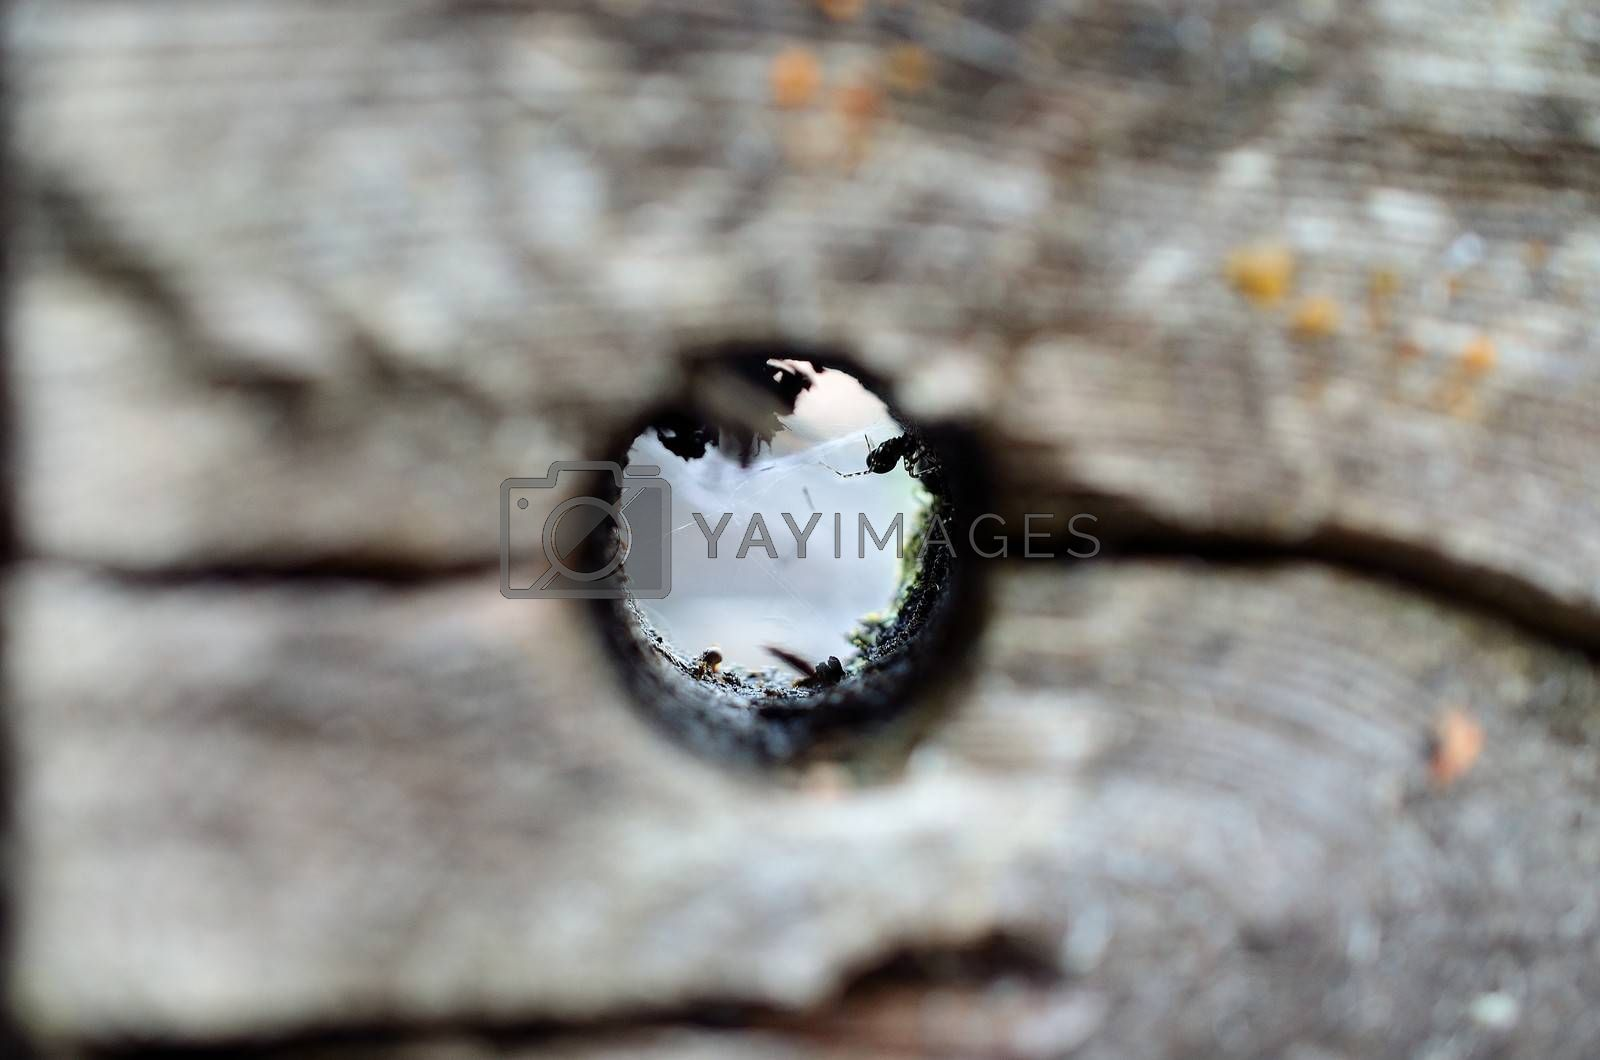 Royalty free image of Spider has made a cosy web inside a round hole in a big wood log by Finephotoworks